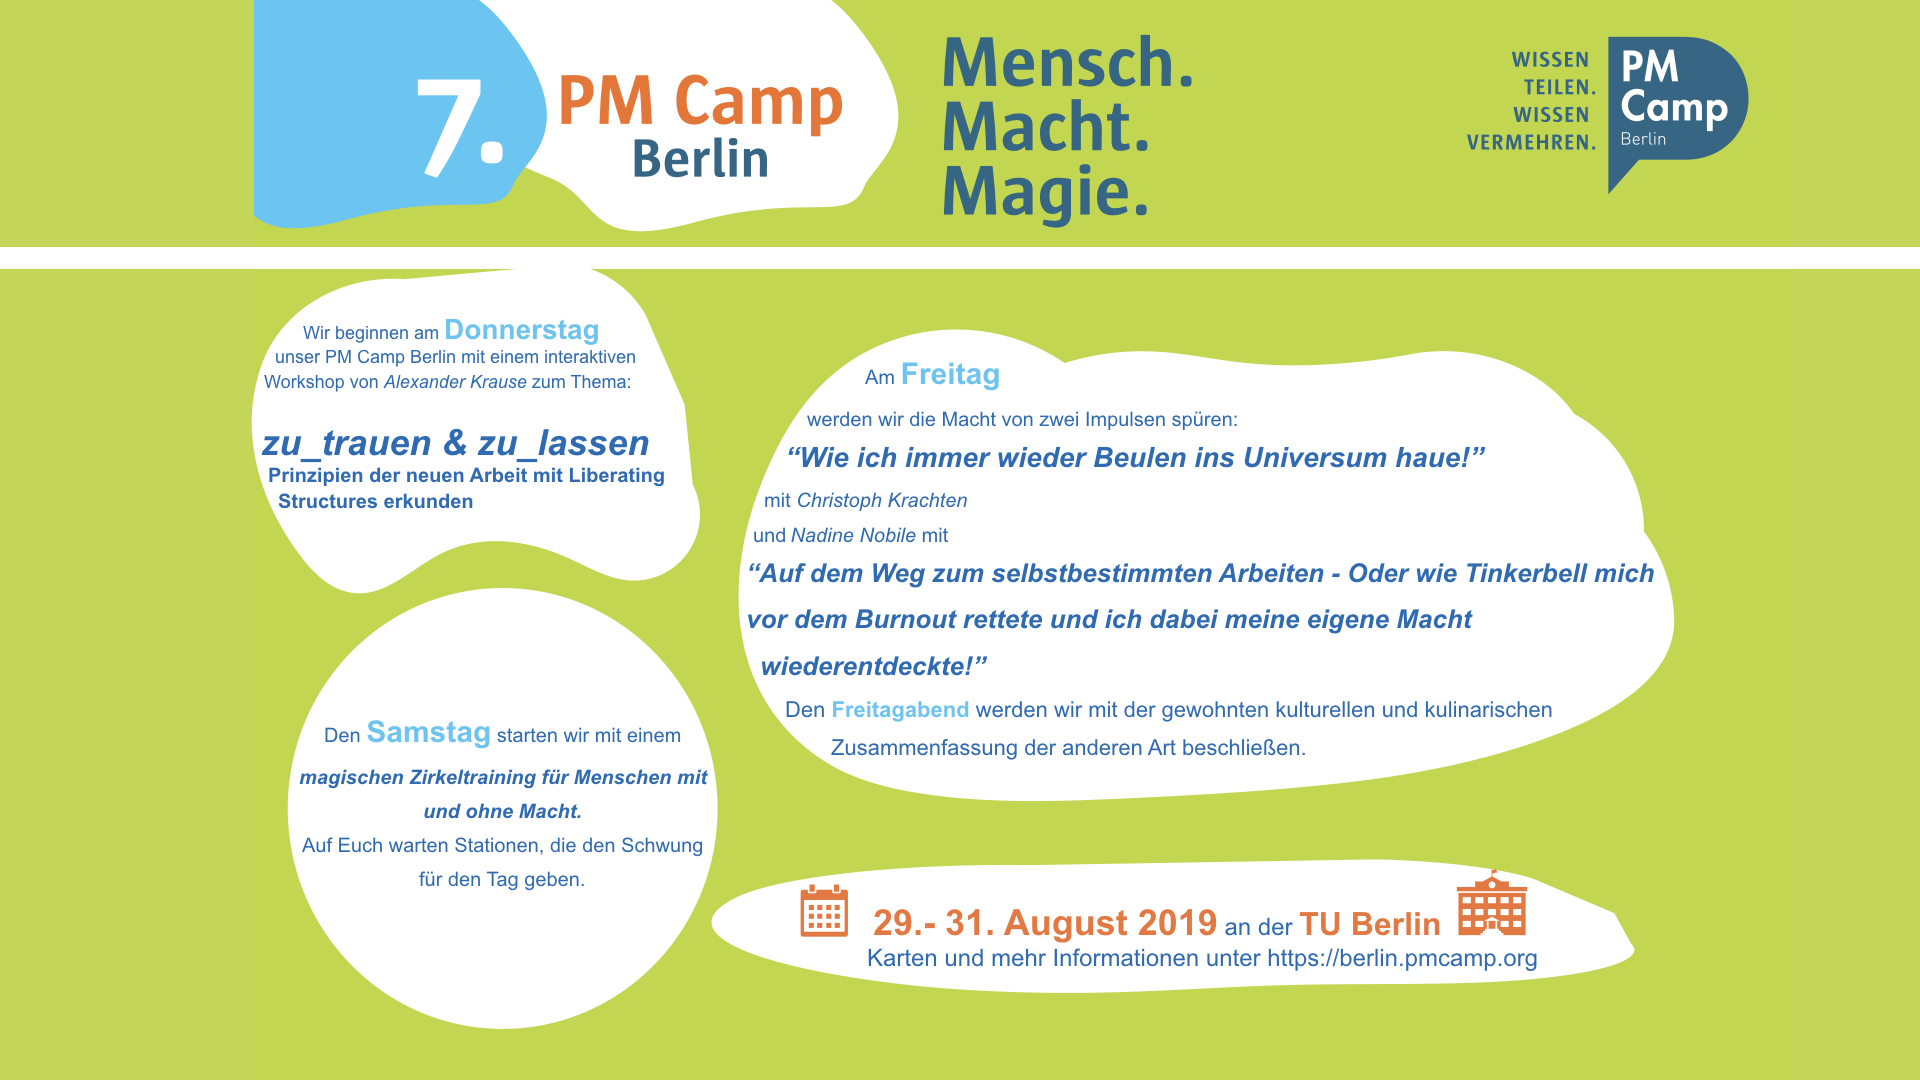 PM Camp Berlin 6